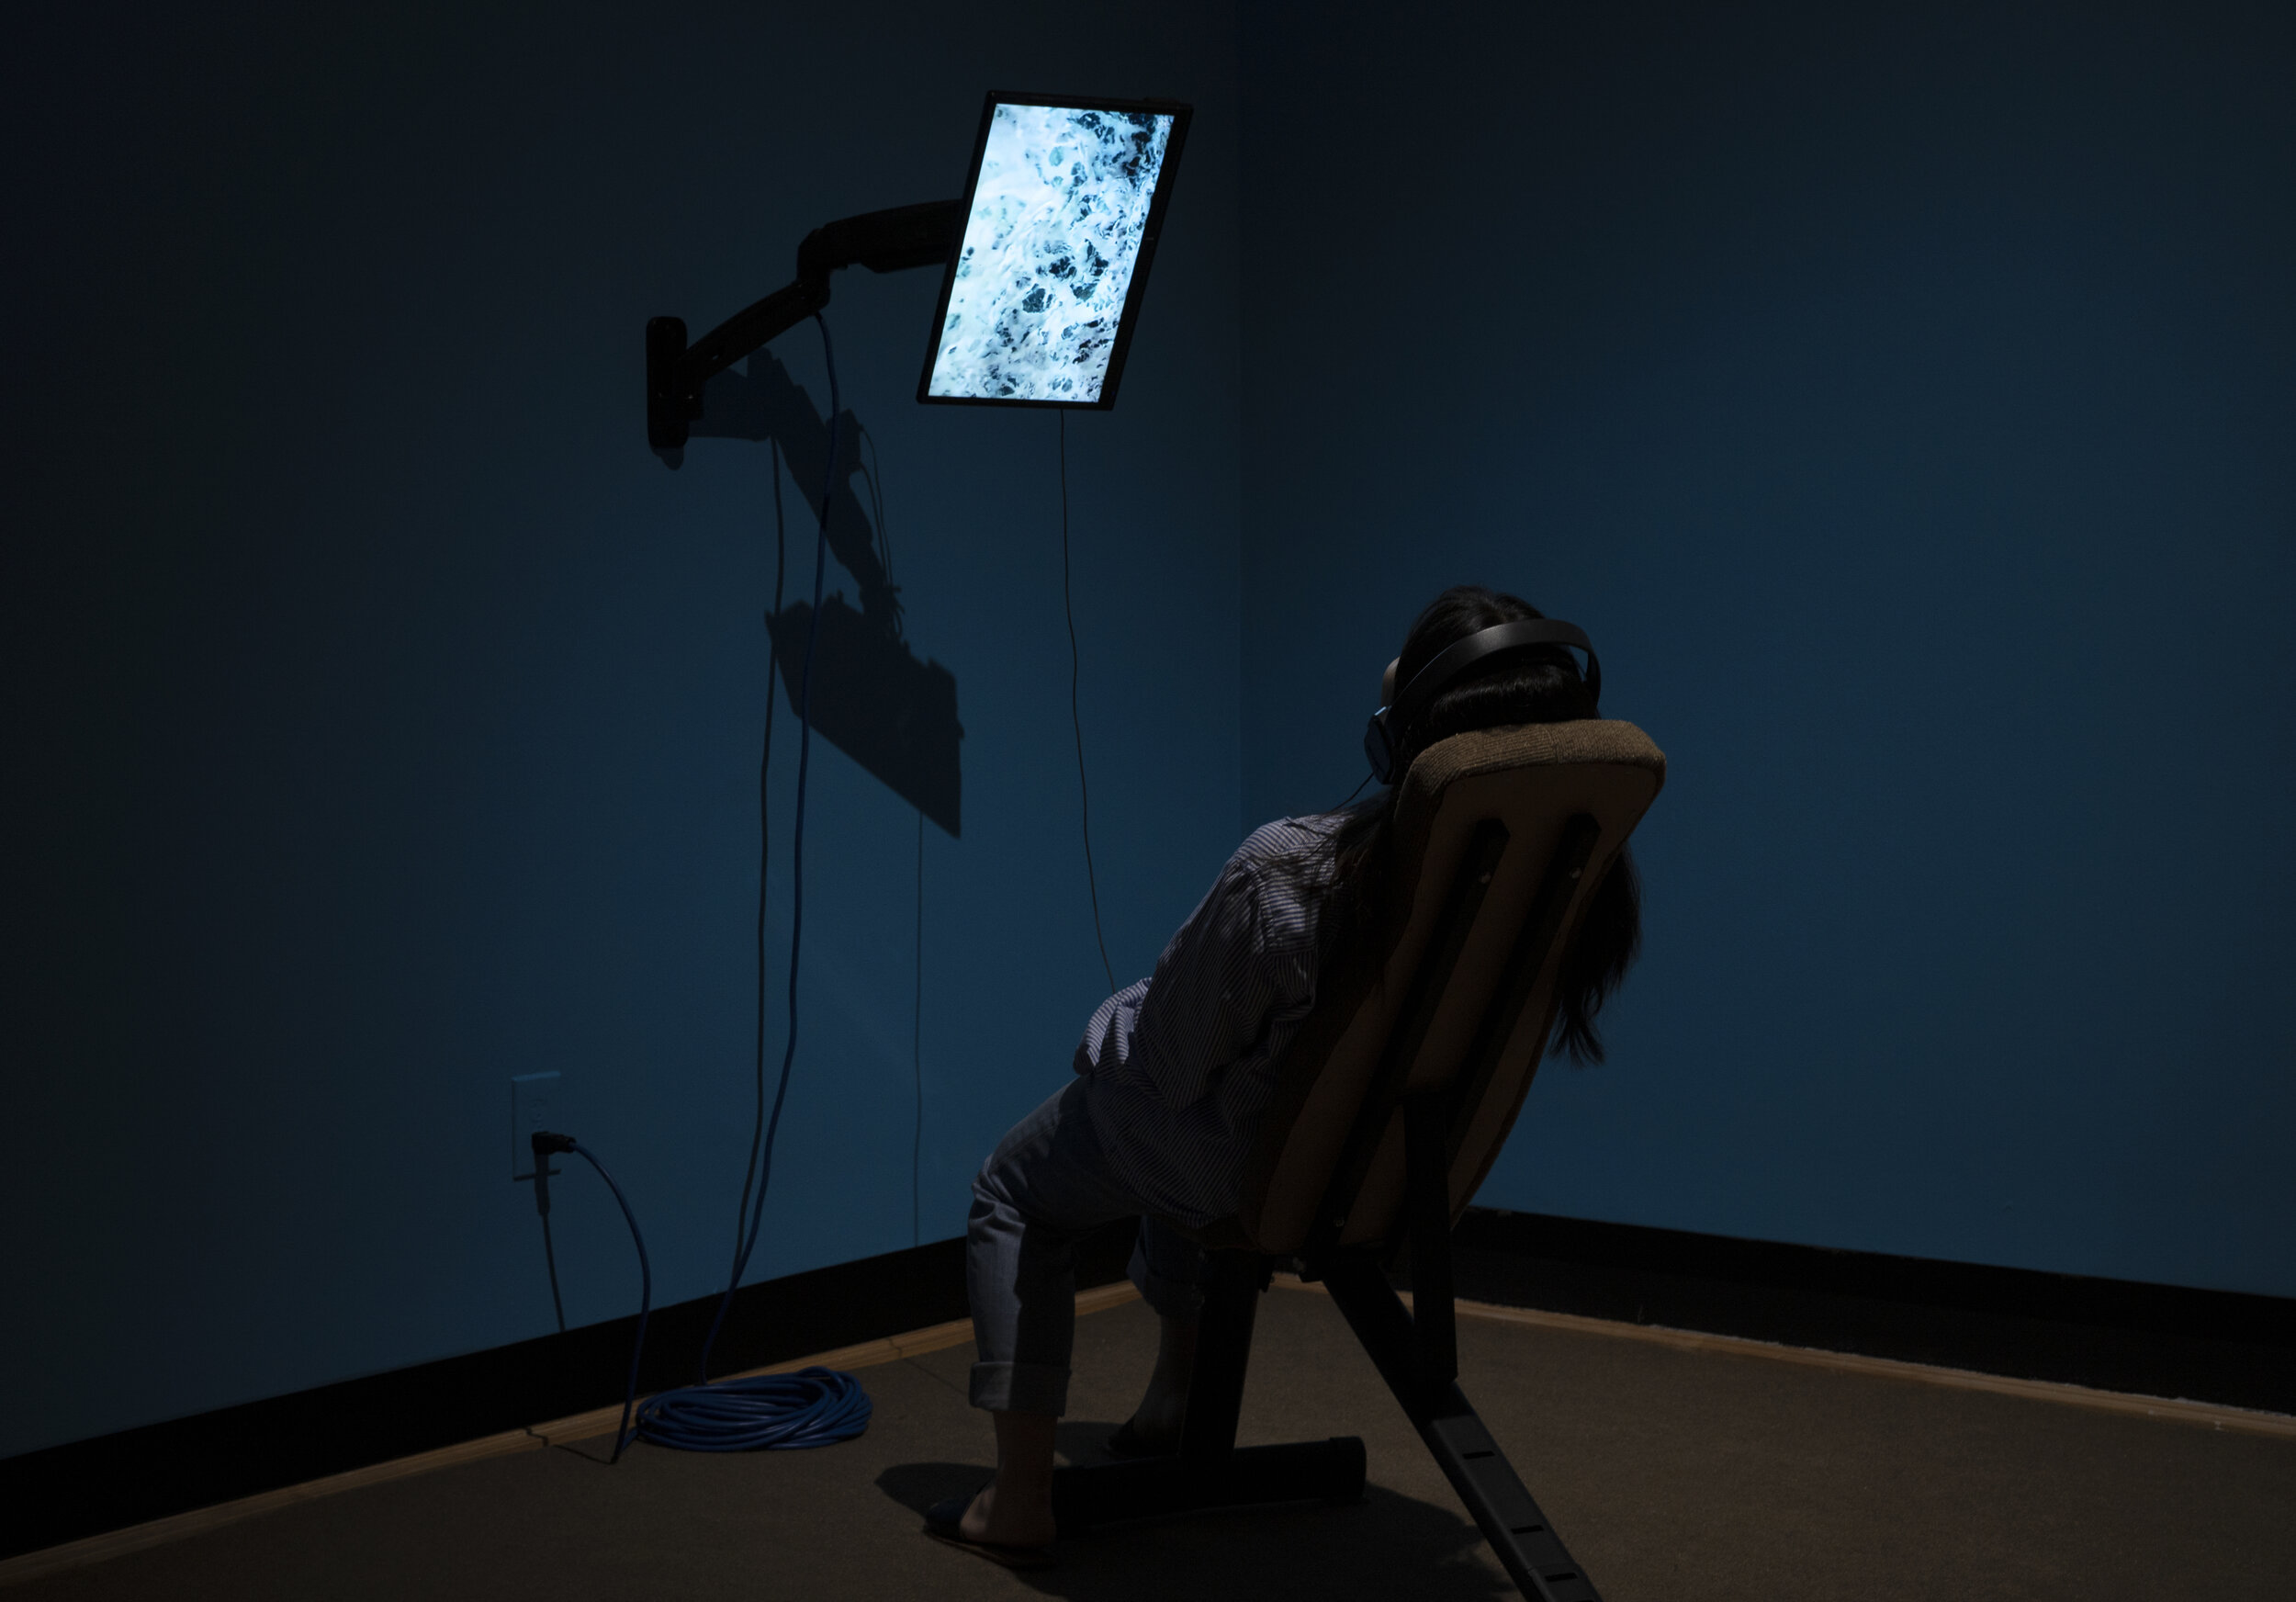 Pilgrimage to Hell and Back: A Guide to Disappearing and Resurrecting  (Installation view). Single-channel video, headphones, monitor, mount, extension cord, paint, carpet, incline bench. Dimensions variable. 2019